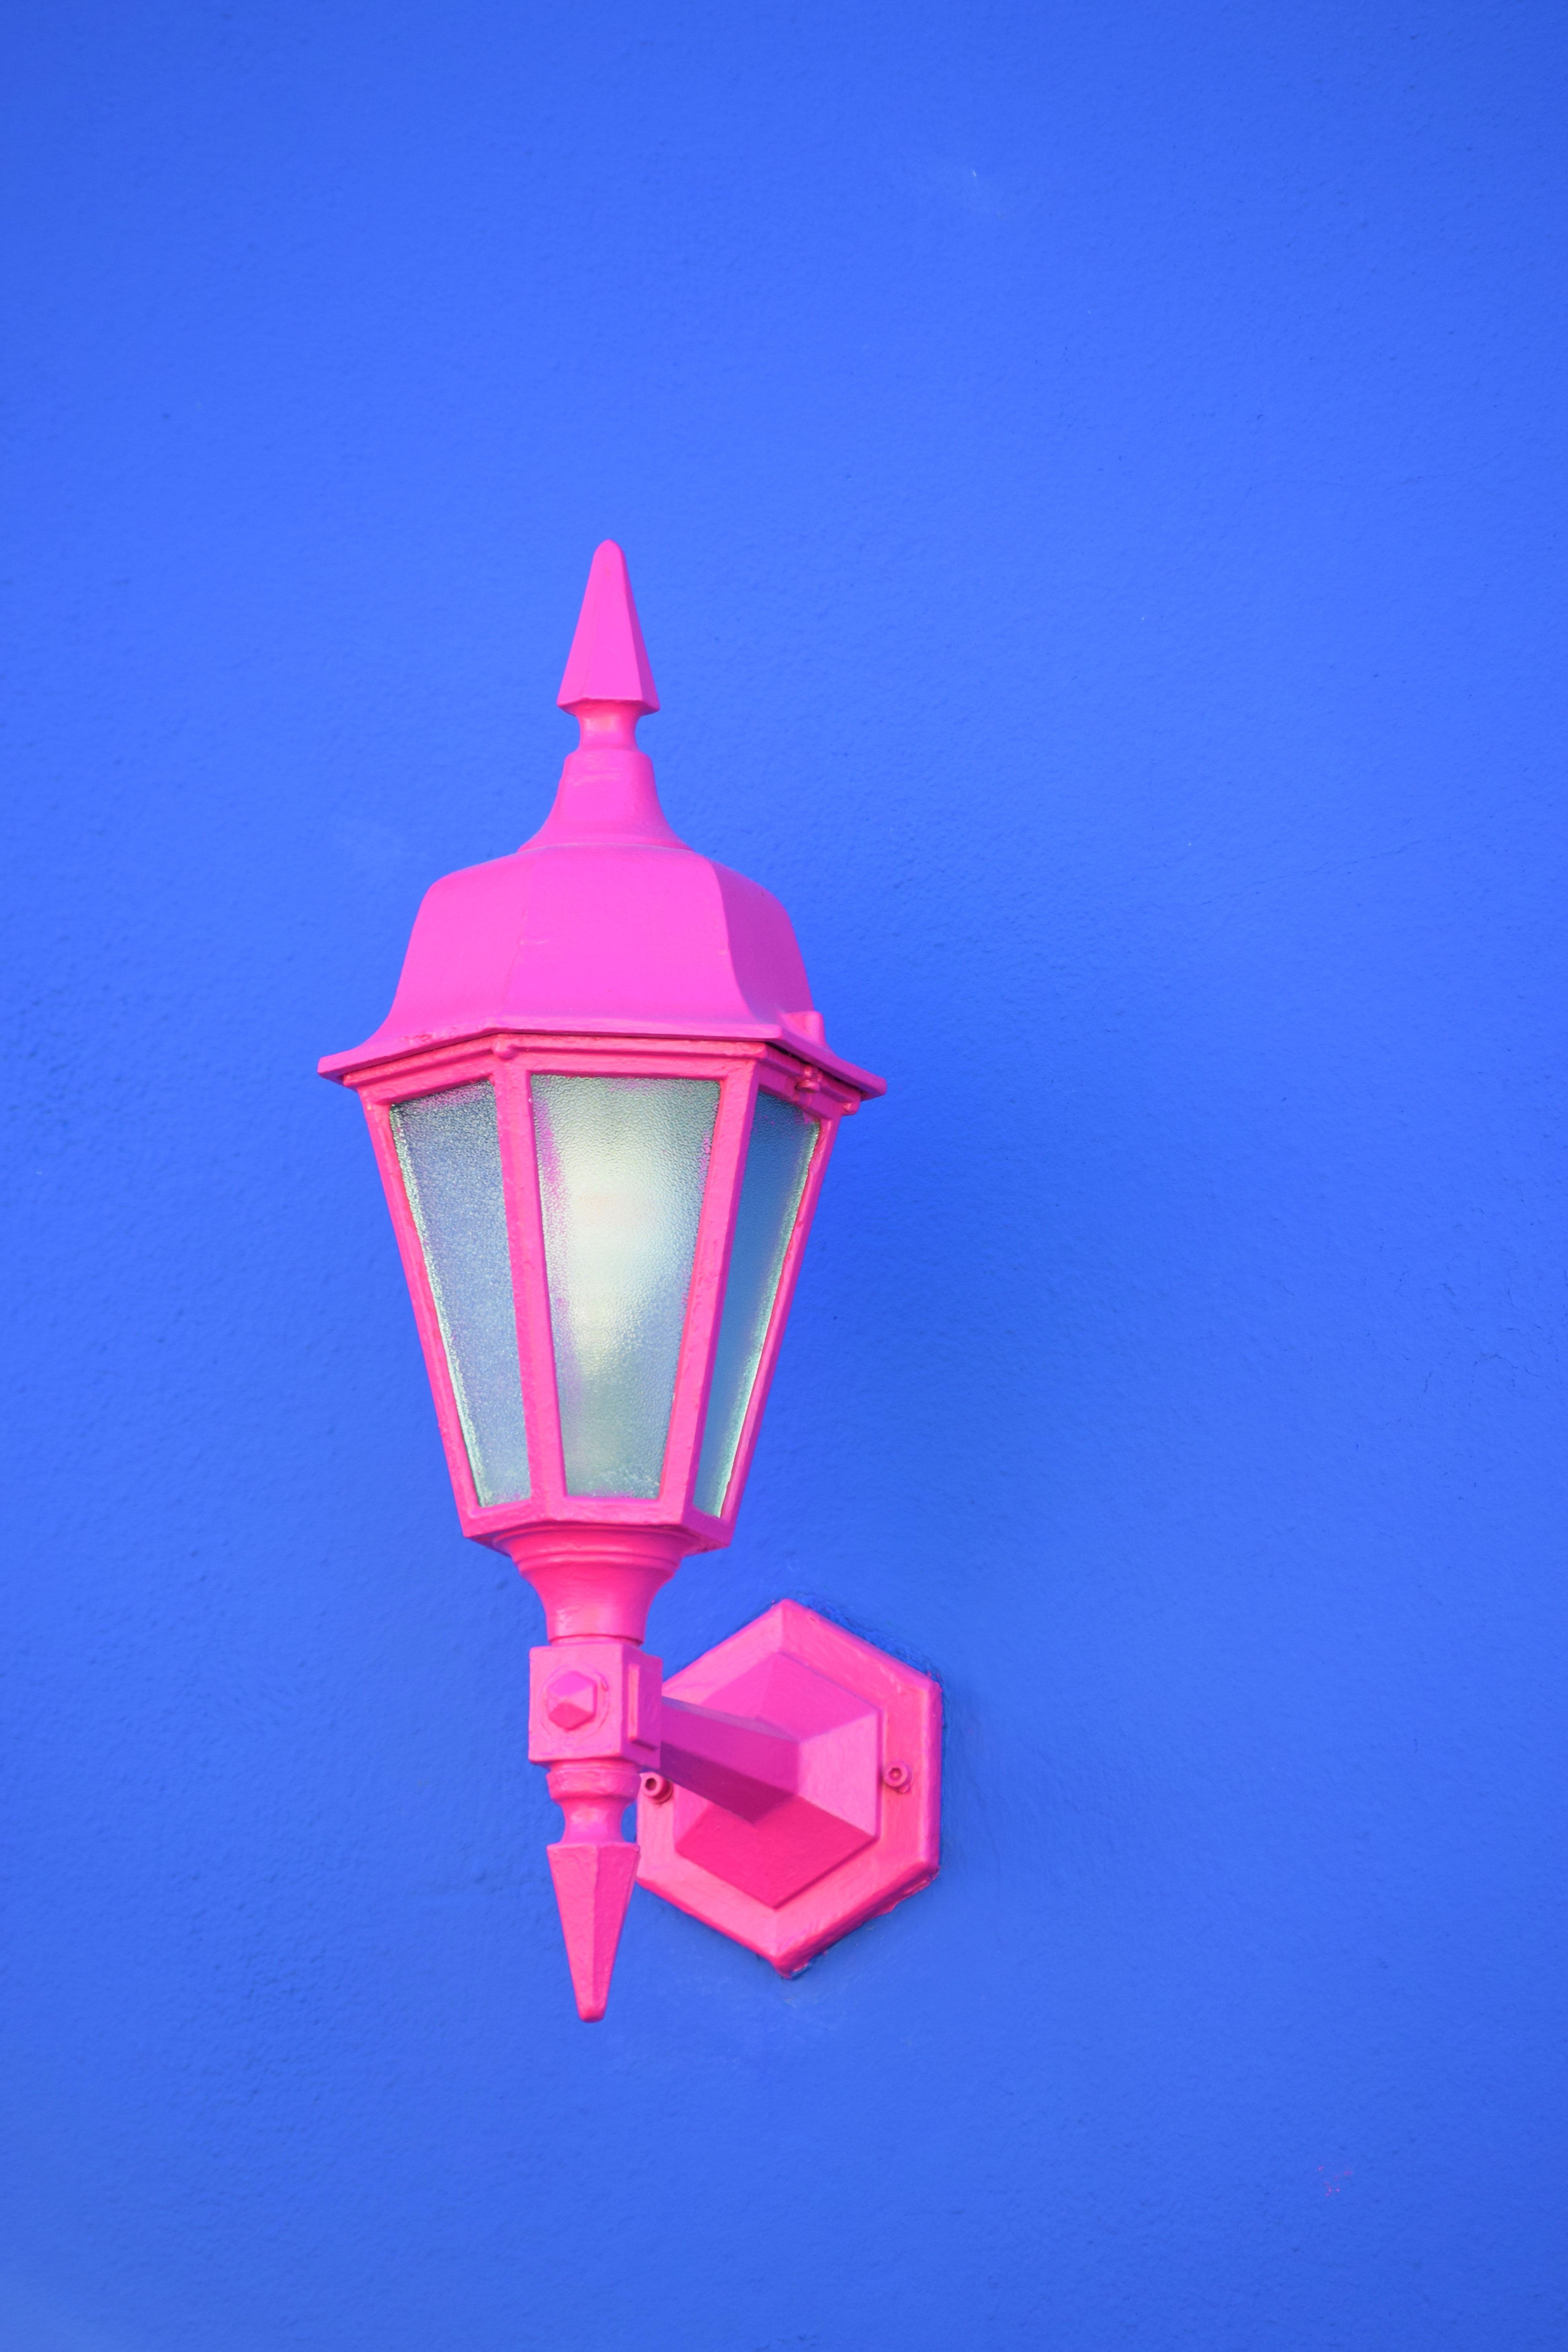 A pink outdoor light attached to a blue wall.